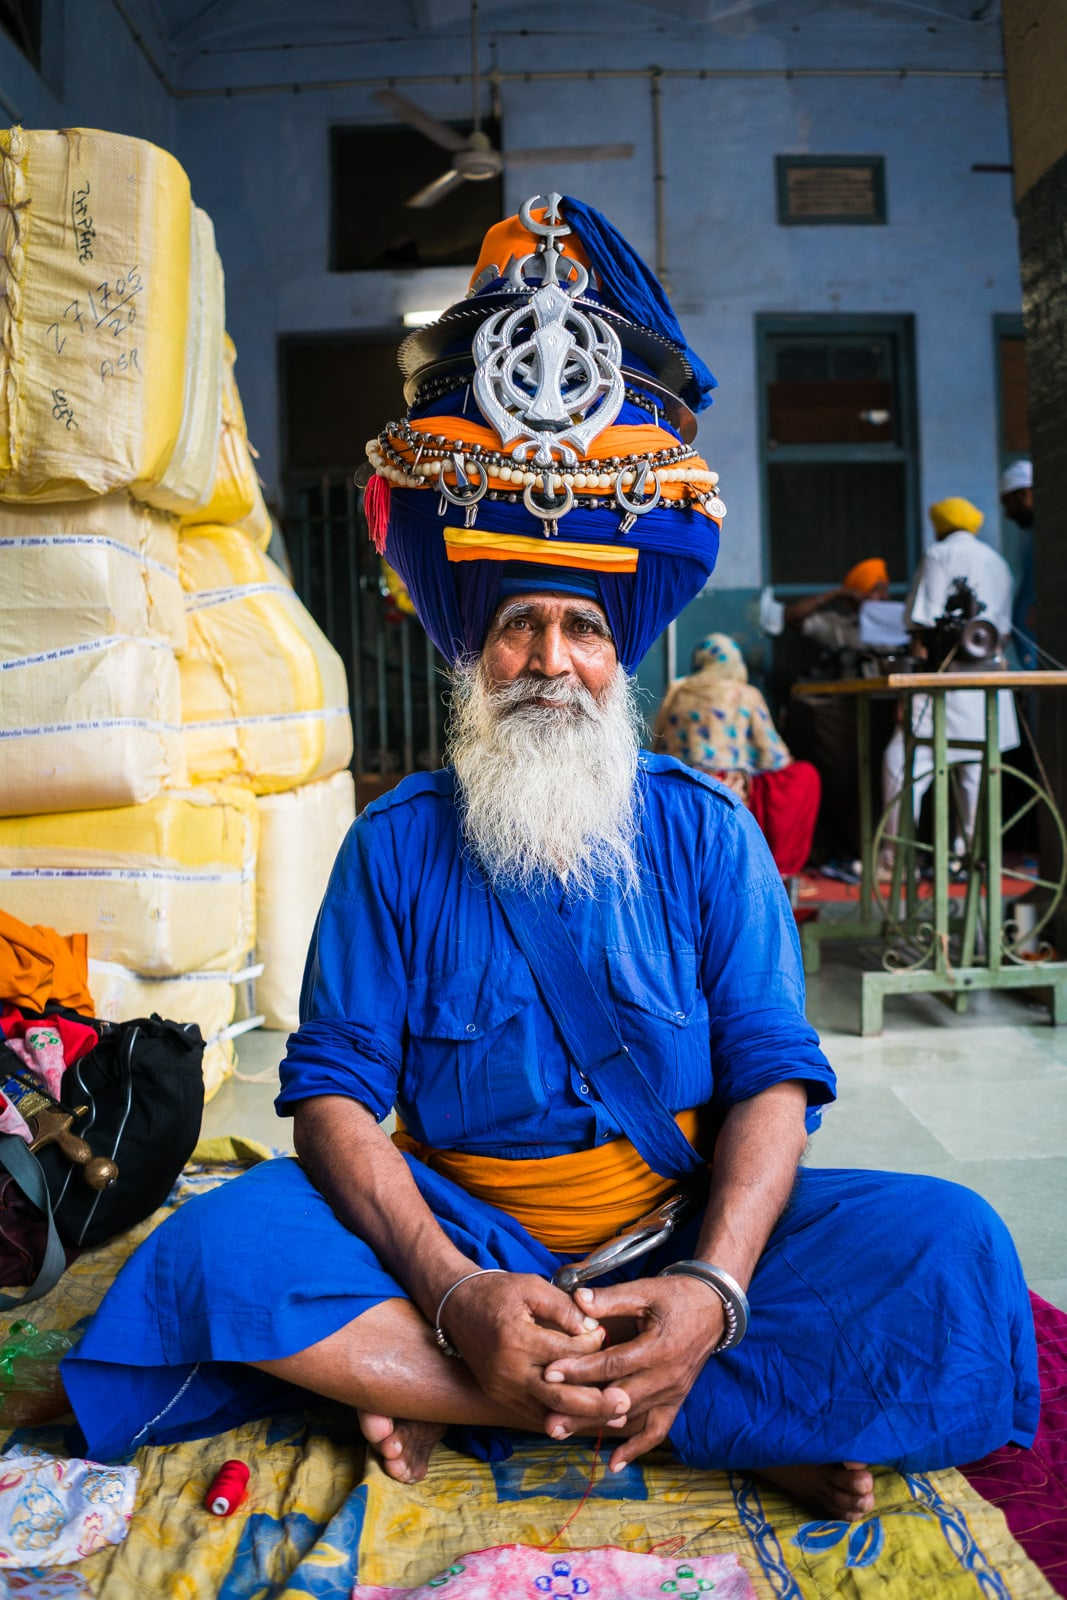 A Sikh man in full regalia sitting in one of the guesthouses around the Golden Temple in Amritsar, Punjab state, India.